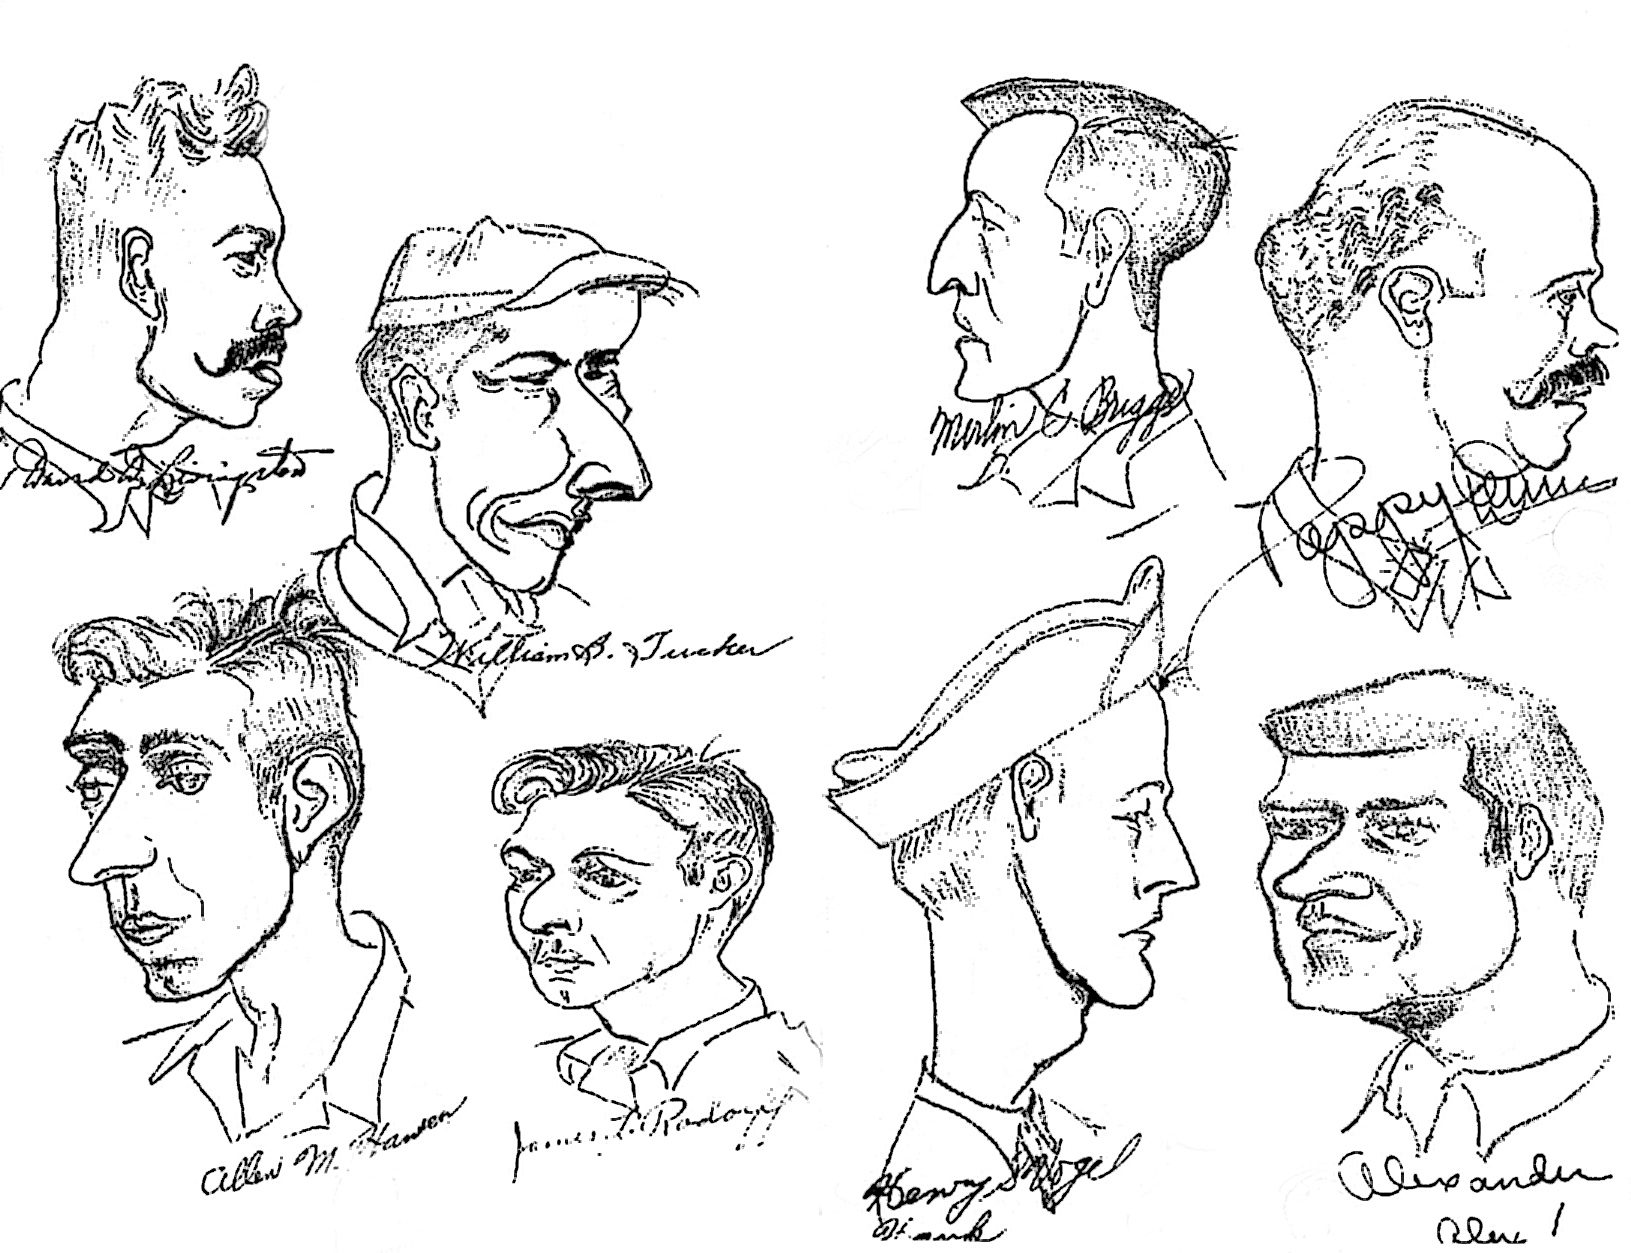 Sketches of men in room 1